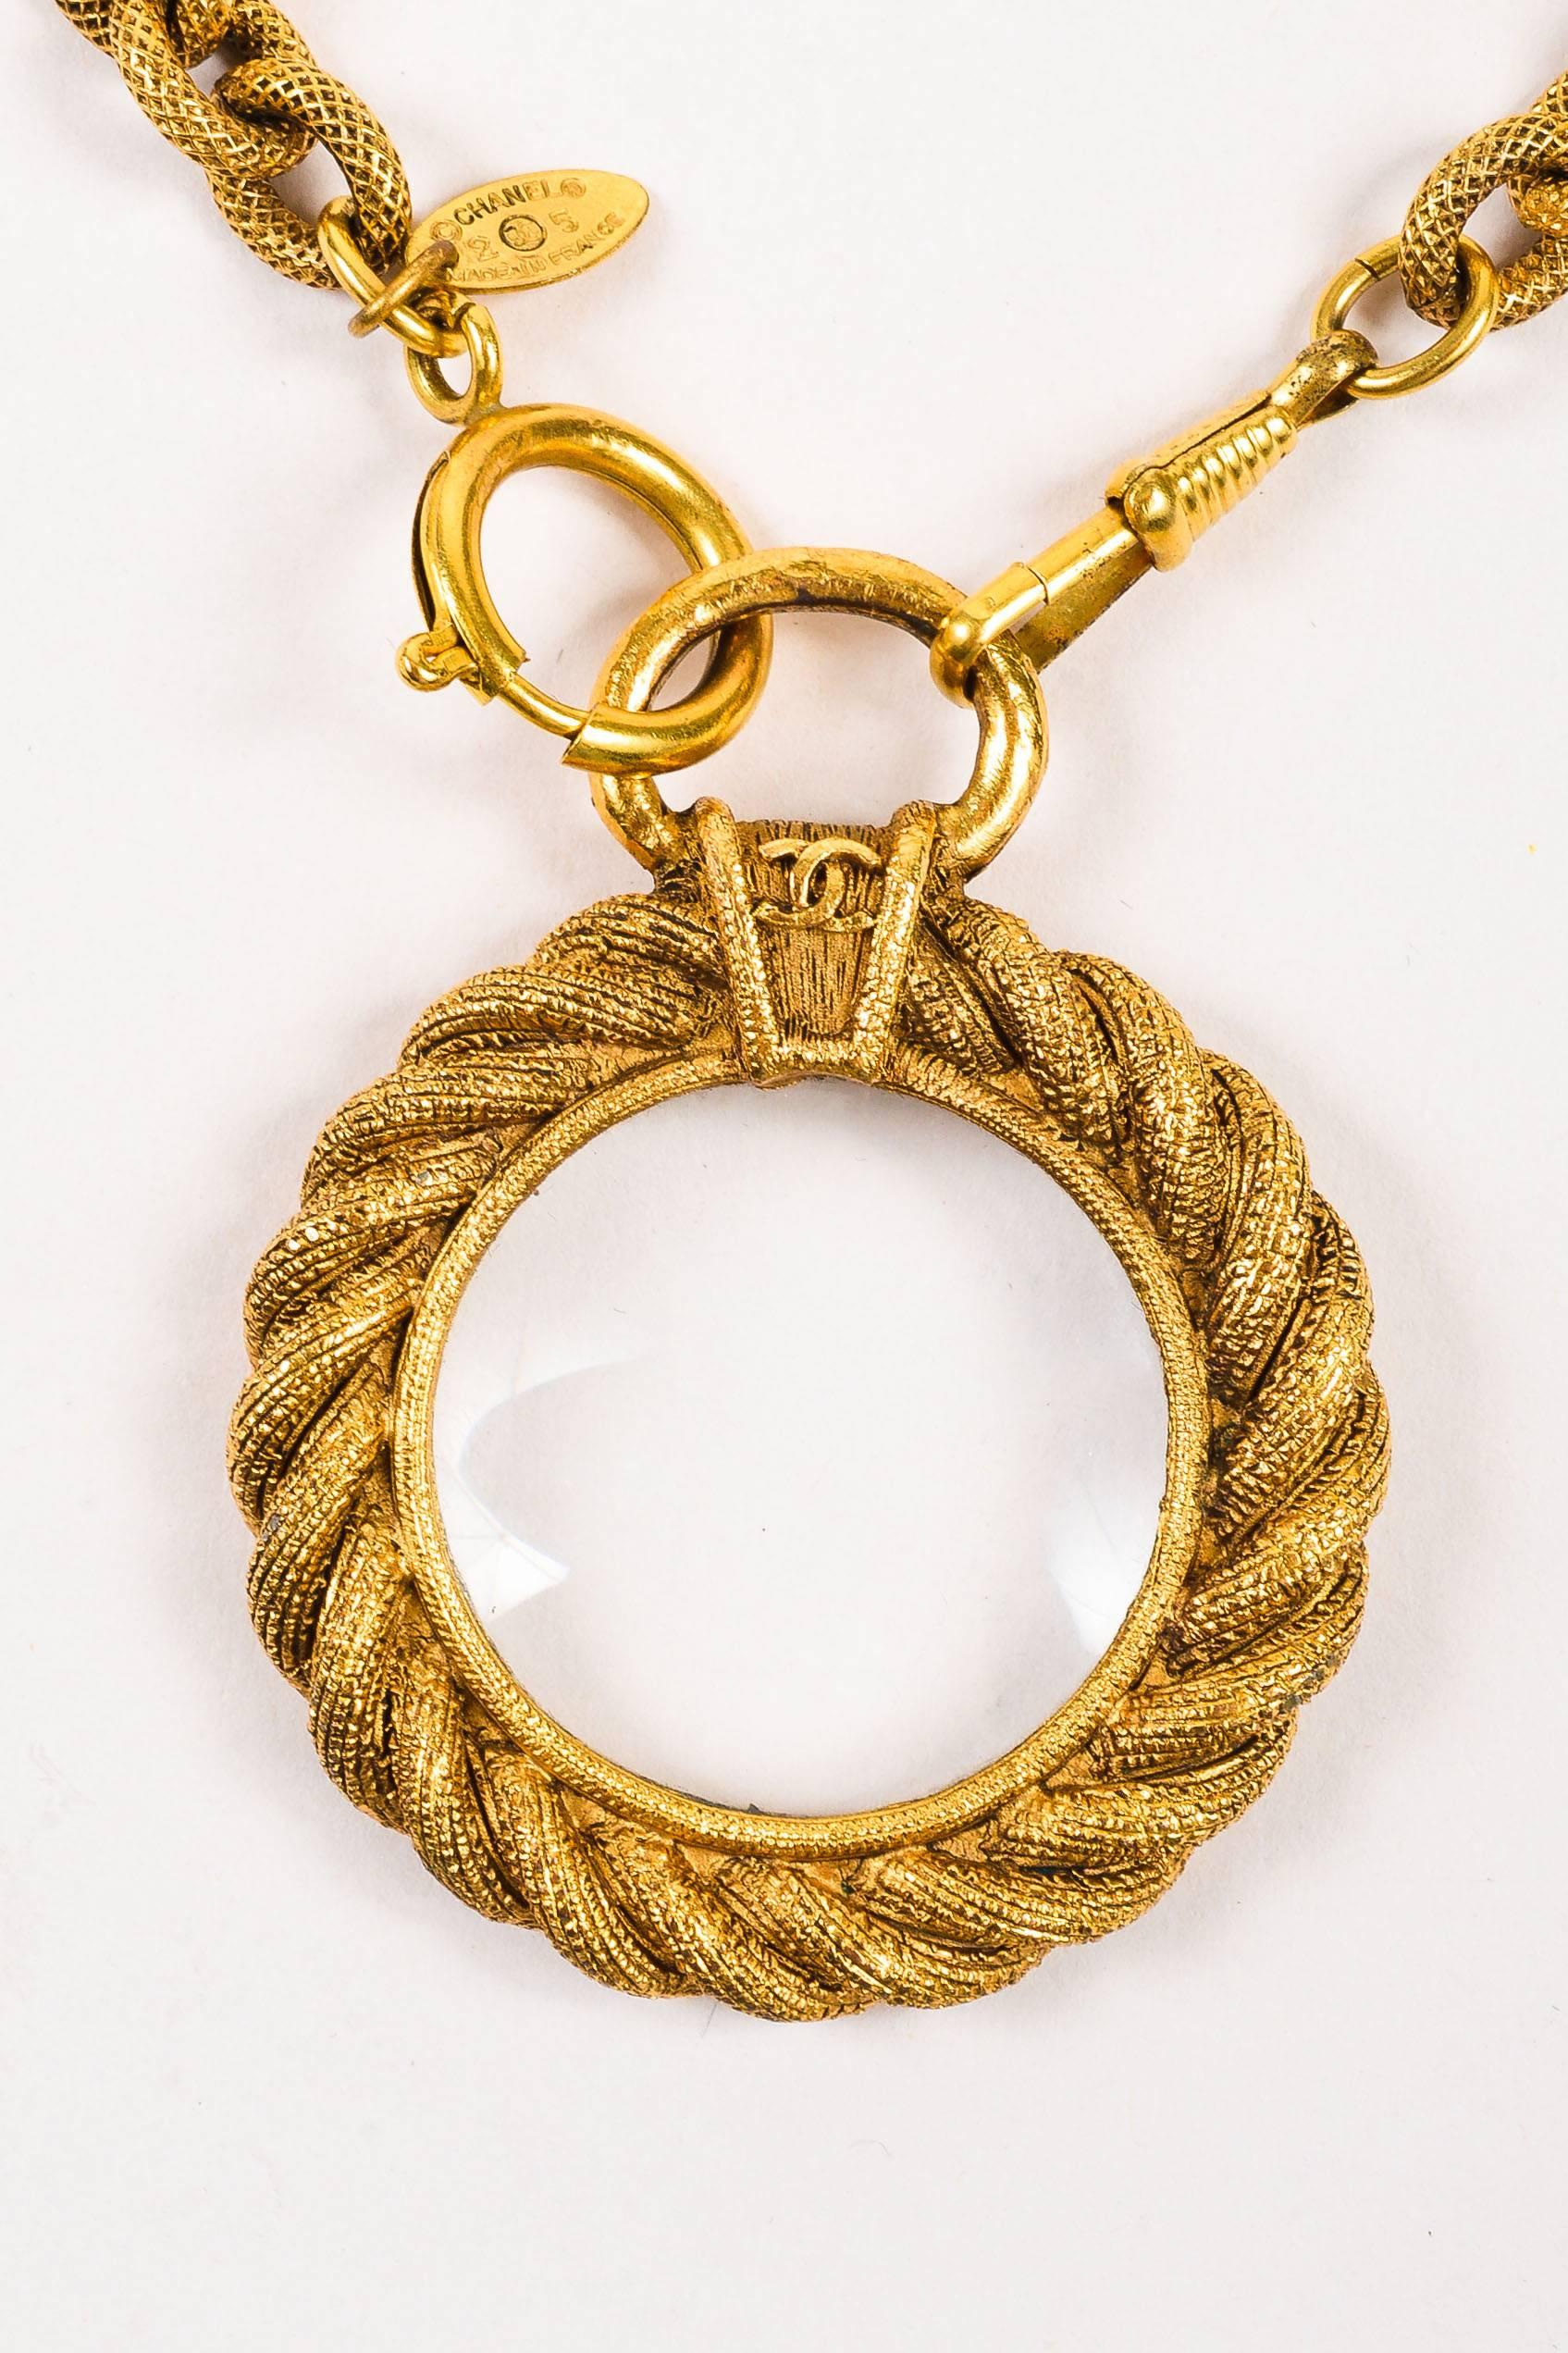 Vintage chanel gold tone etched link chain magnifying glass pendant vintage chanel gold tone etched link chain magnifying glass pendant necklace for sale at 1stdibs aloadofball Choice Image